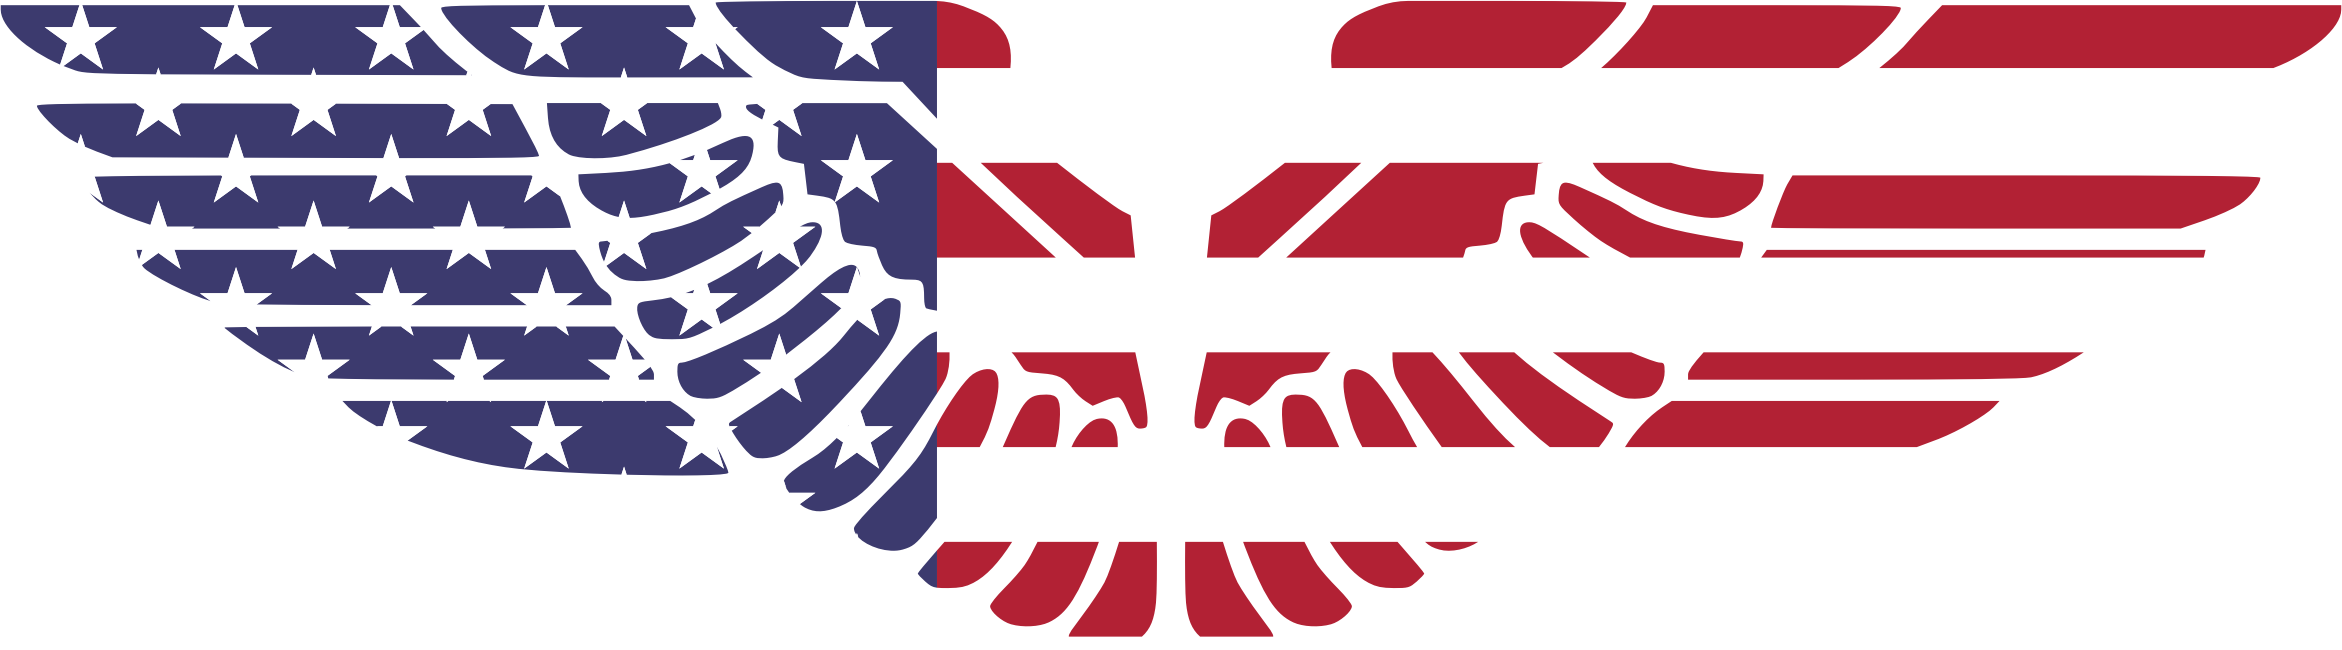 Wing clipart eagle. American wings big image